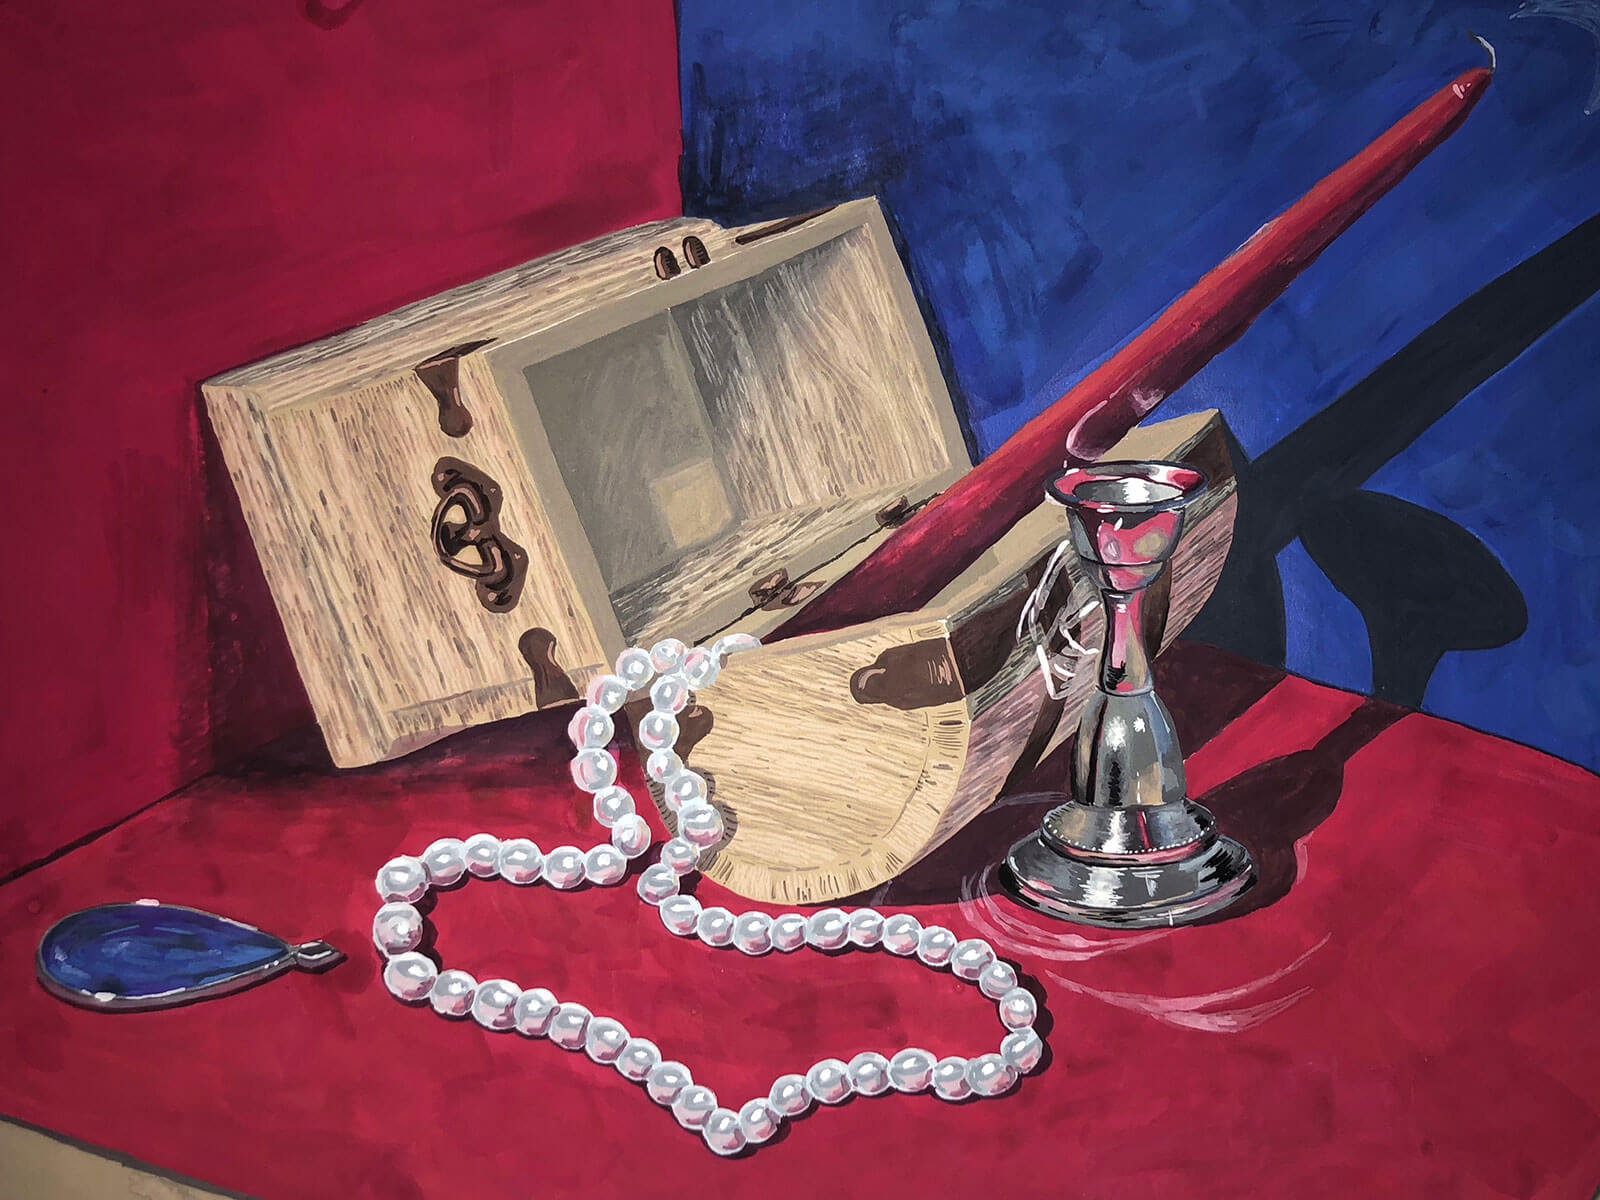 An open treasure chest with a red candle and pearl necklace